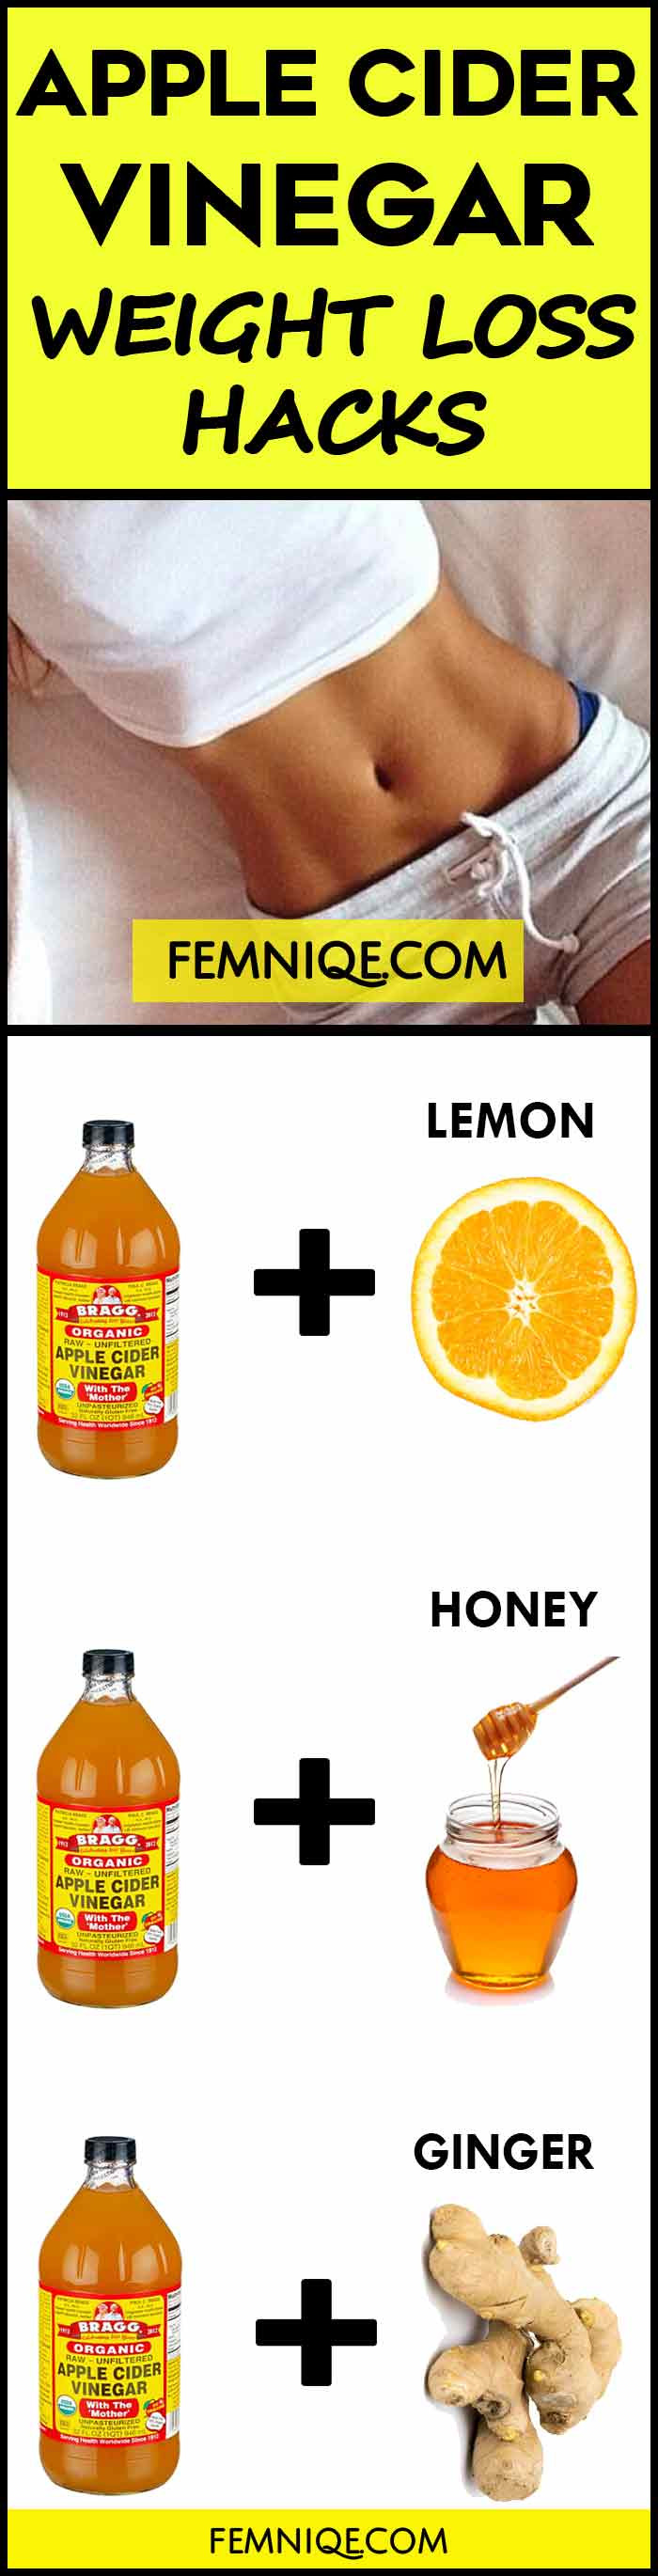 How To Take Apple Cider Vinegar For Weight Loss  How To Use Apple Cider Vinegar for Weight Loss – Femniqe